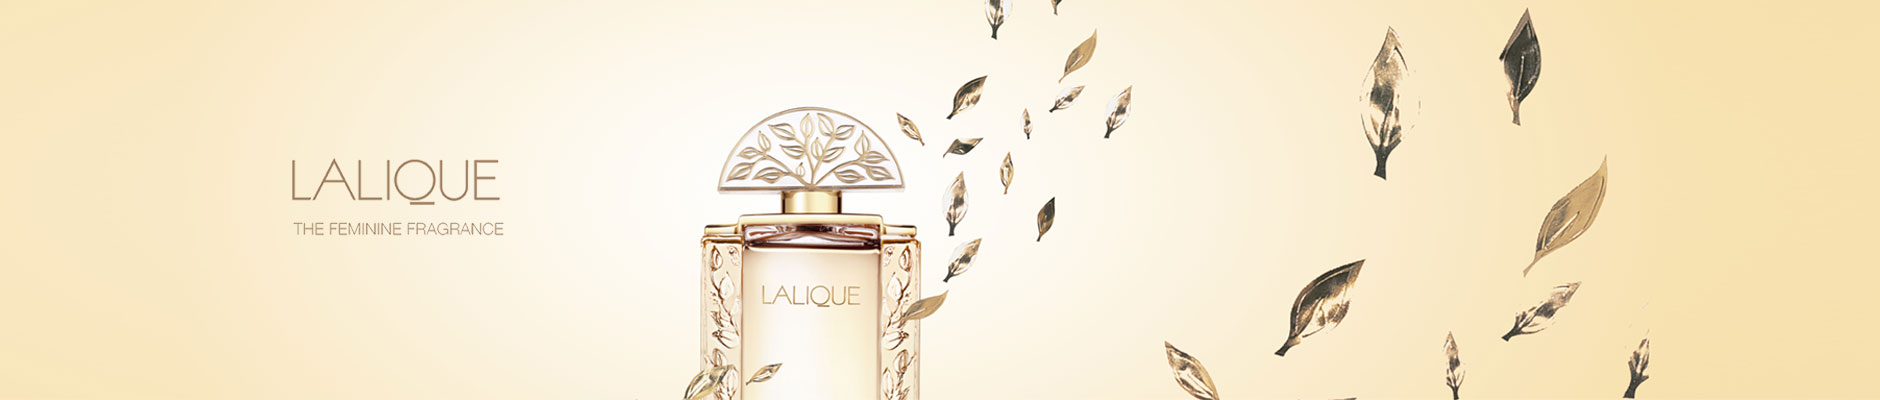 Lalique - the feminine fragrance